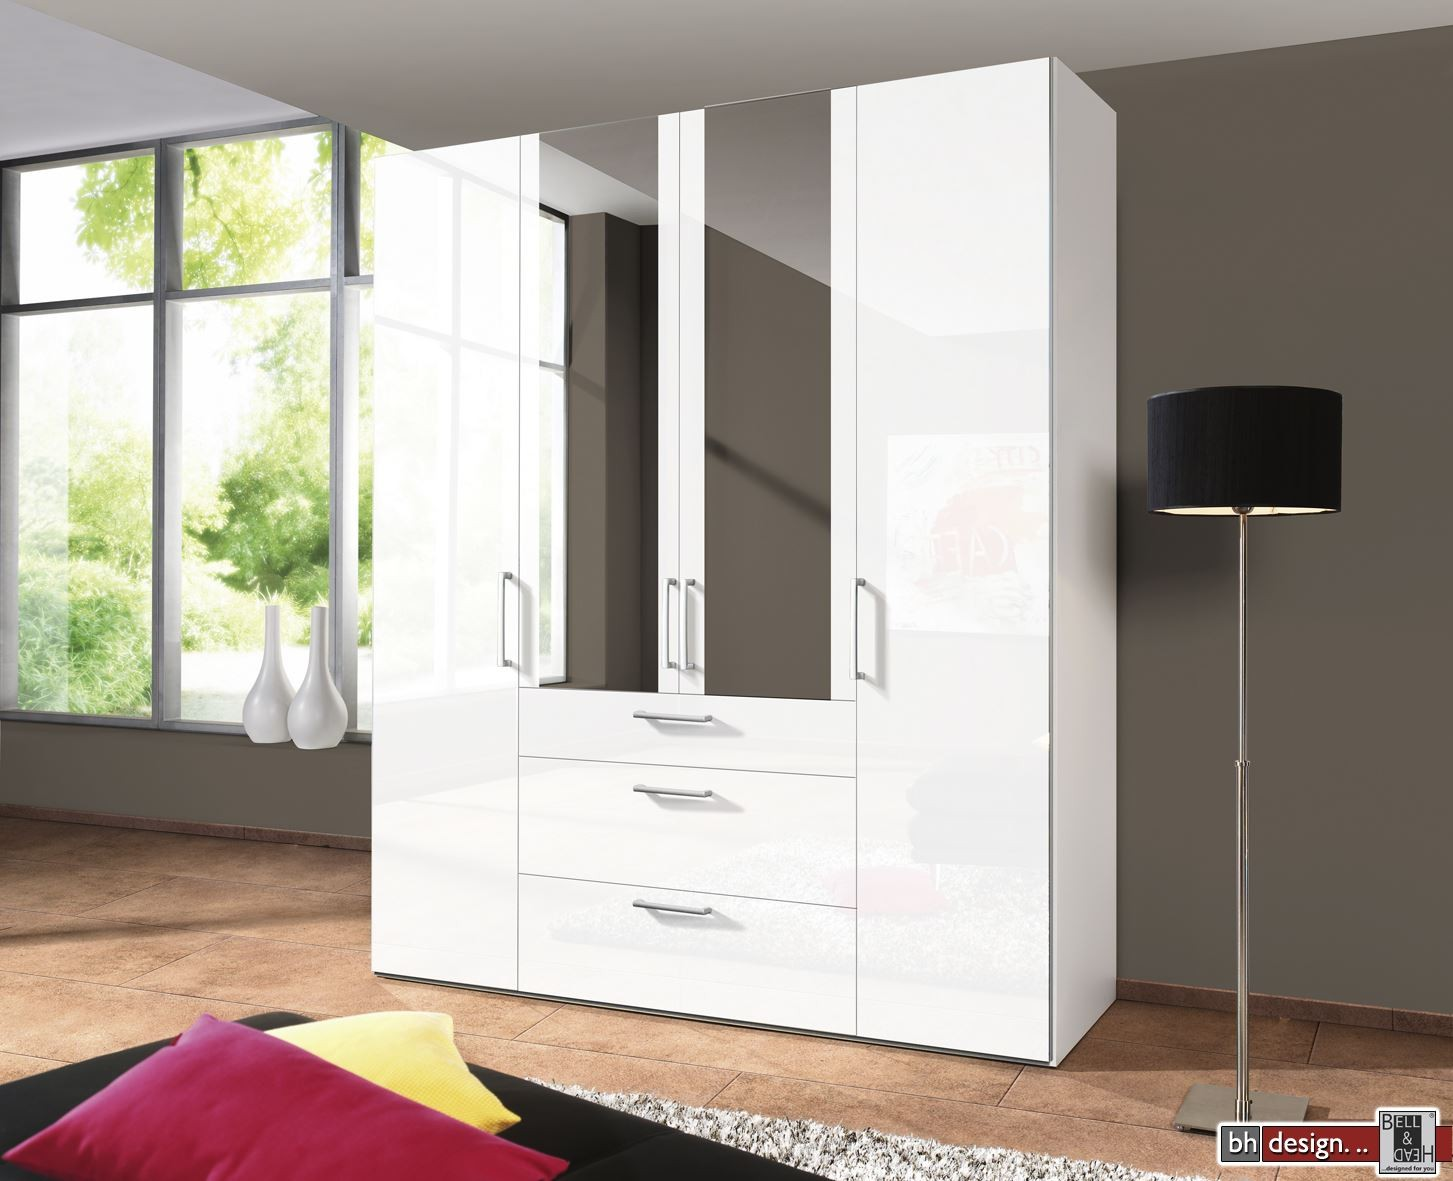 express m bel dreht renschrank brooklyn hochglanz spiegel und schubladen h he 216 cm oder. Black Bedroom Furniture Sets. Home Design Ideas